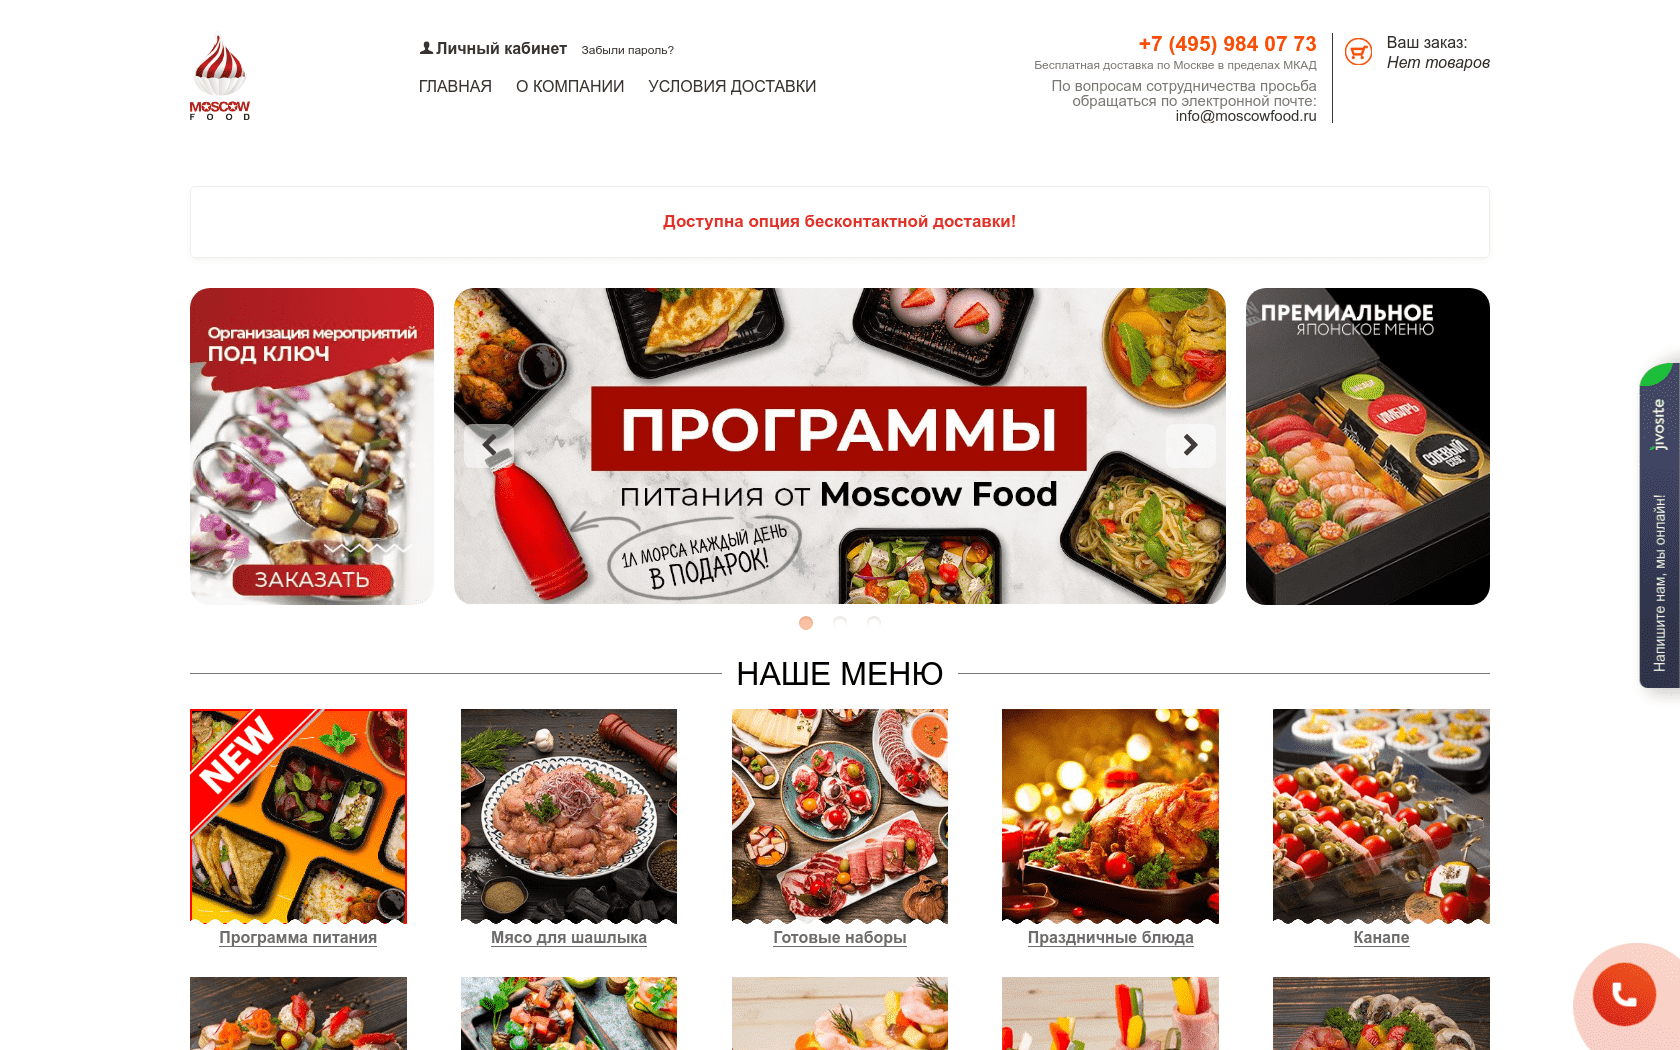 Moscow Food